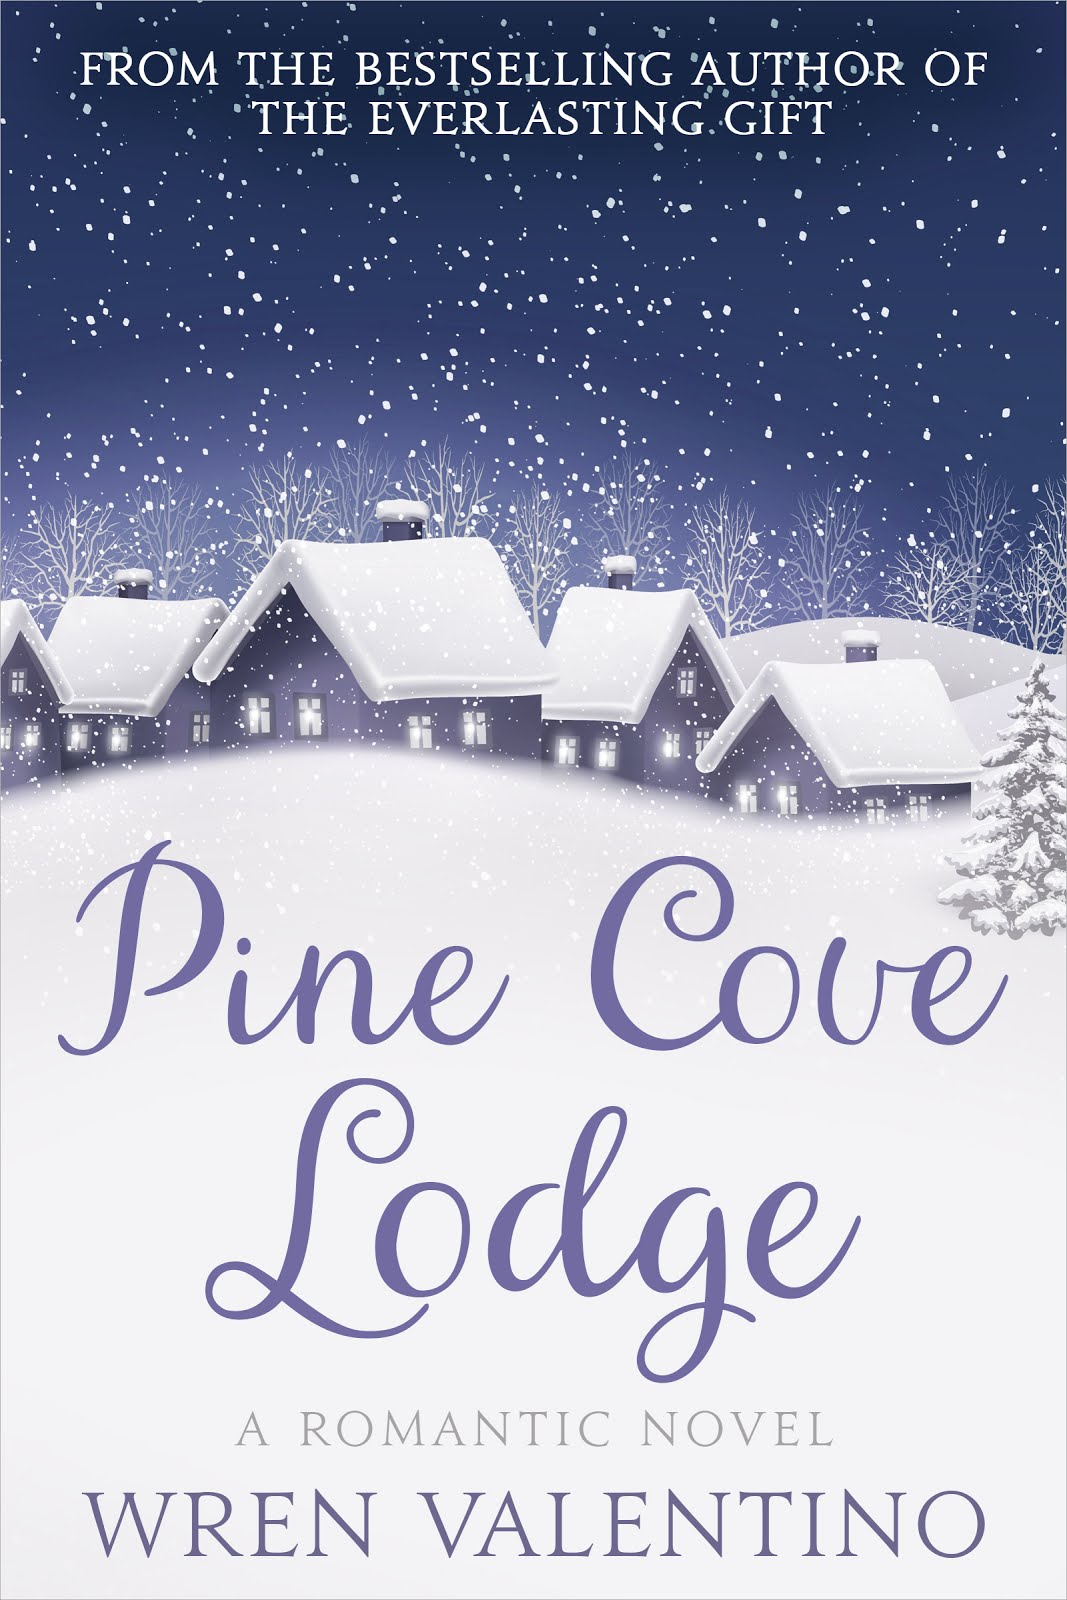 PINE COVE LODGE